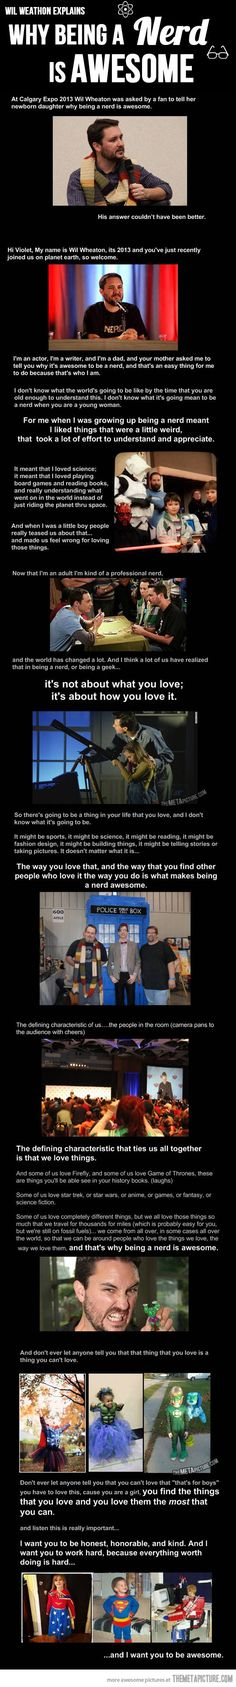 I haven't even read this yet, but I know it's super awesome. Will Wheaton explains why being a nerd is awesom.